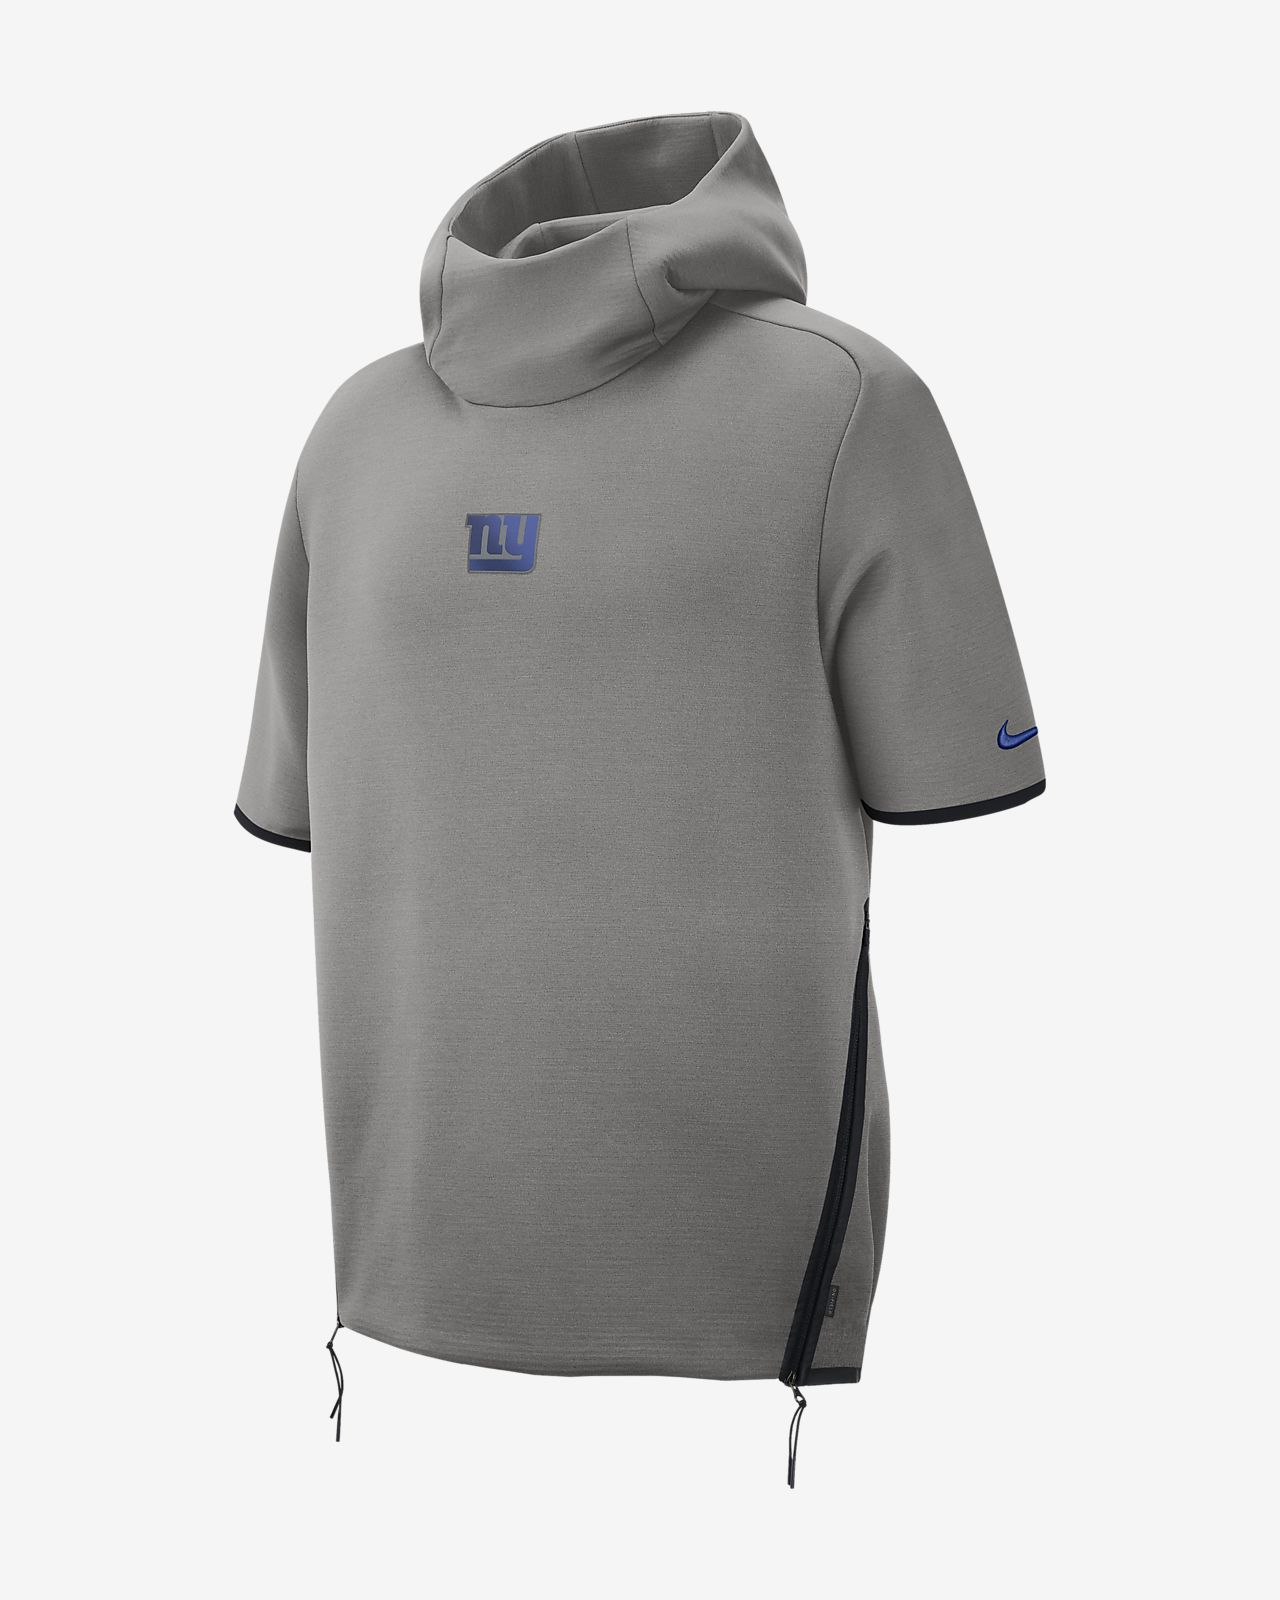 premium selection 092b9 f7ab7 Nike Showout (NFL Giants) Men's Short-Sleeve Hoodie